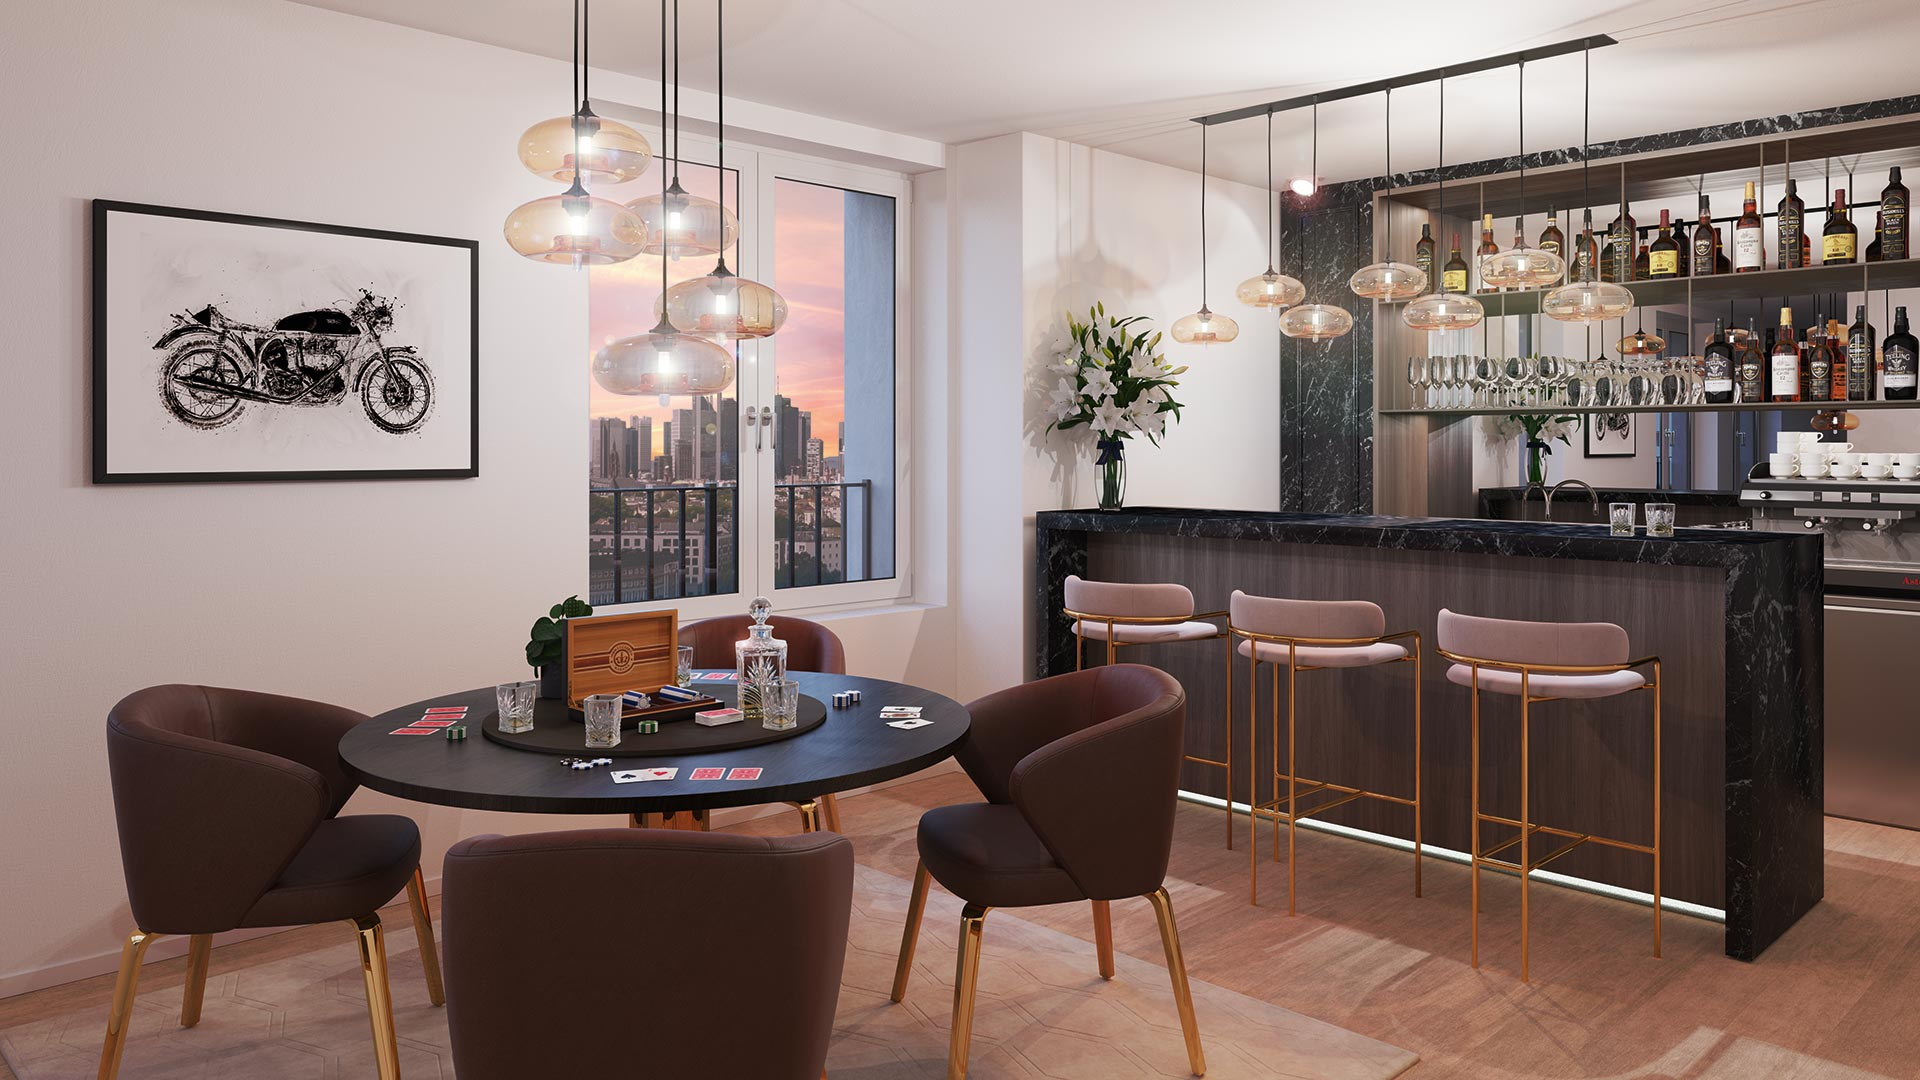 GREAT-EAST_5_Raum_Visionen_Immobilien_marketing